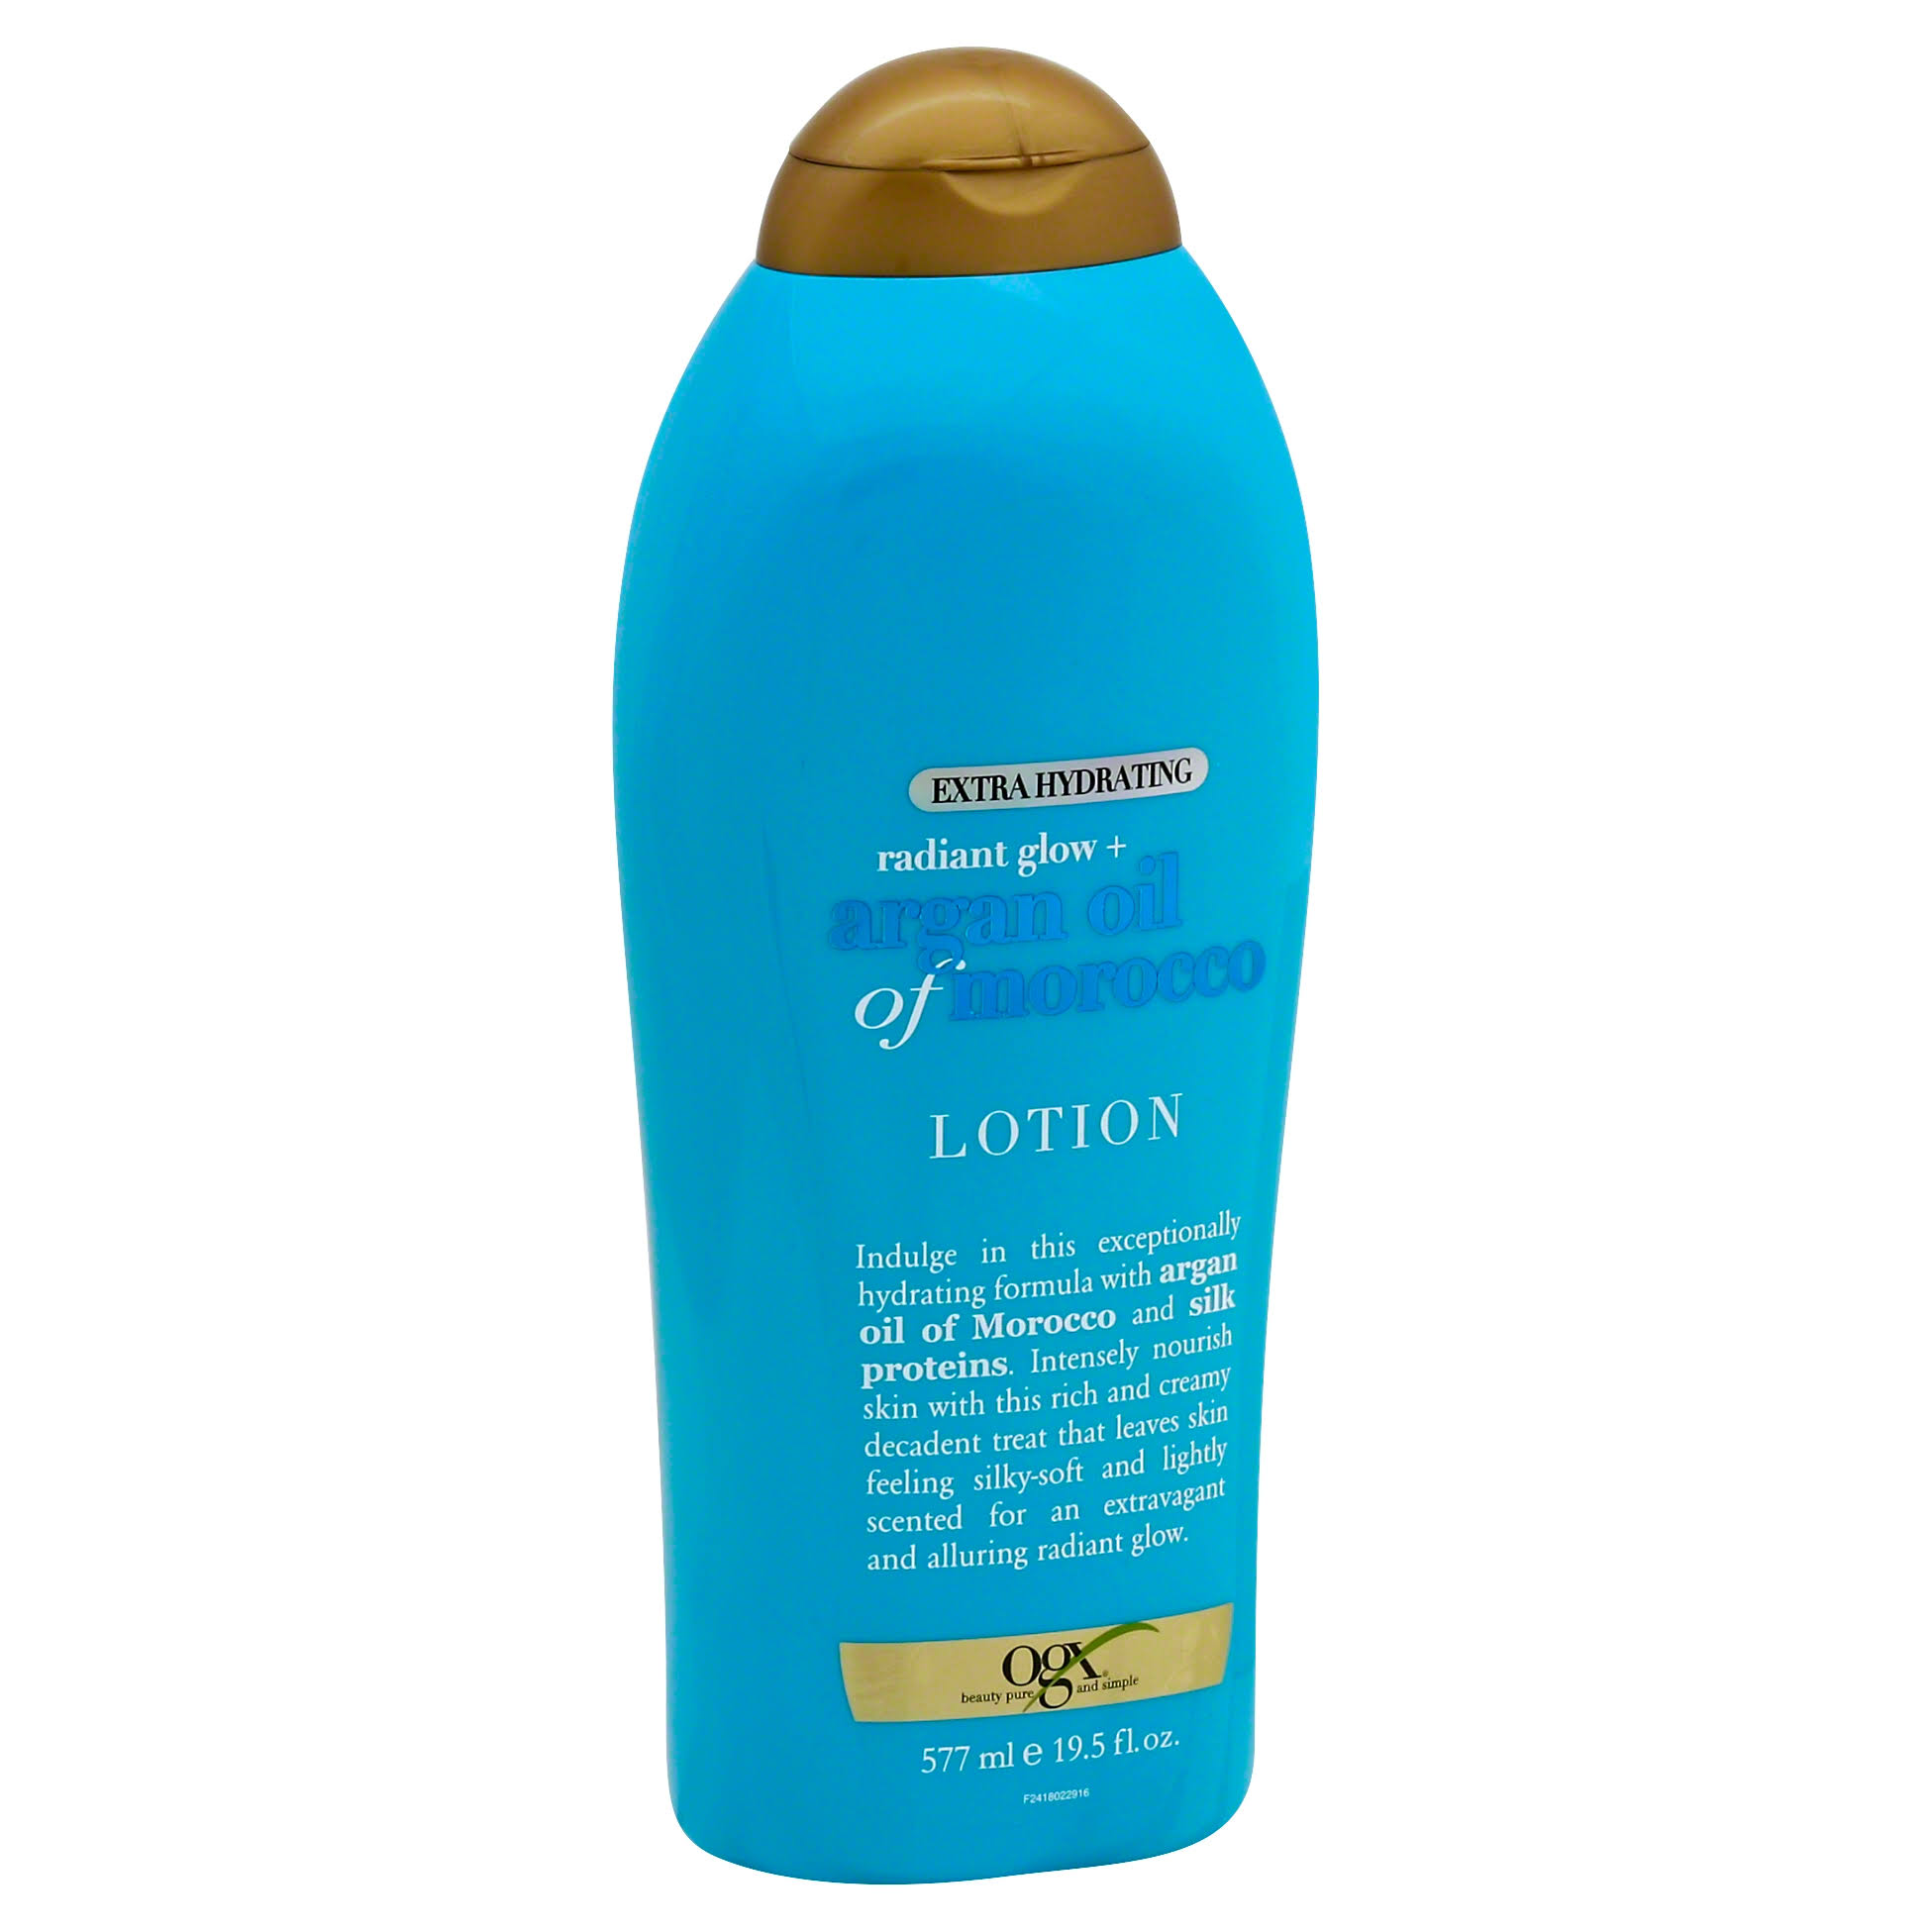 Ogx Radiant Glow Plus Argan Oil of Morocco Lotion - 19.5oz